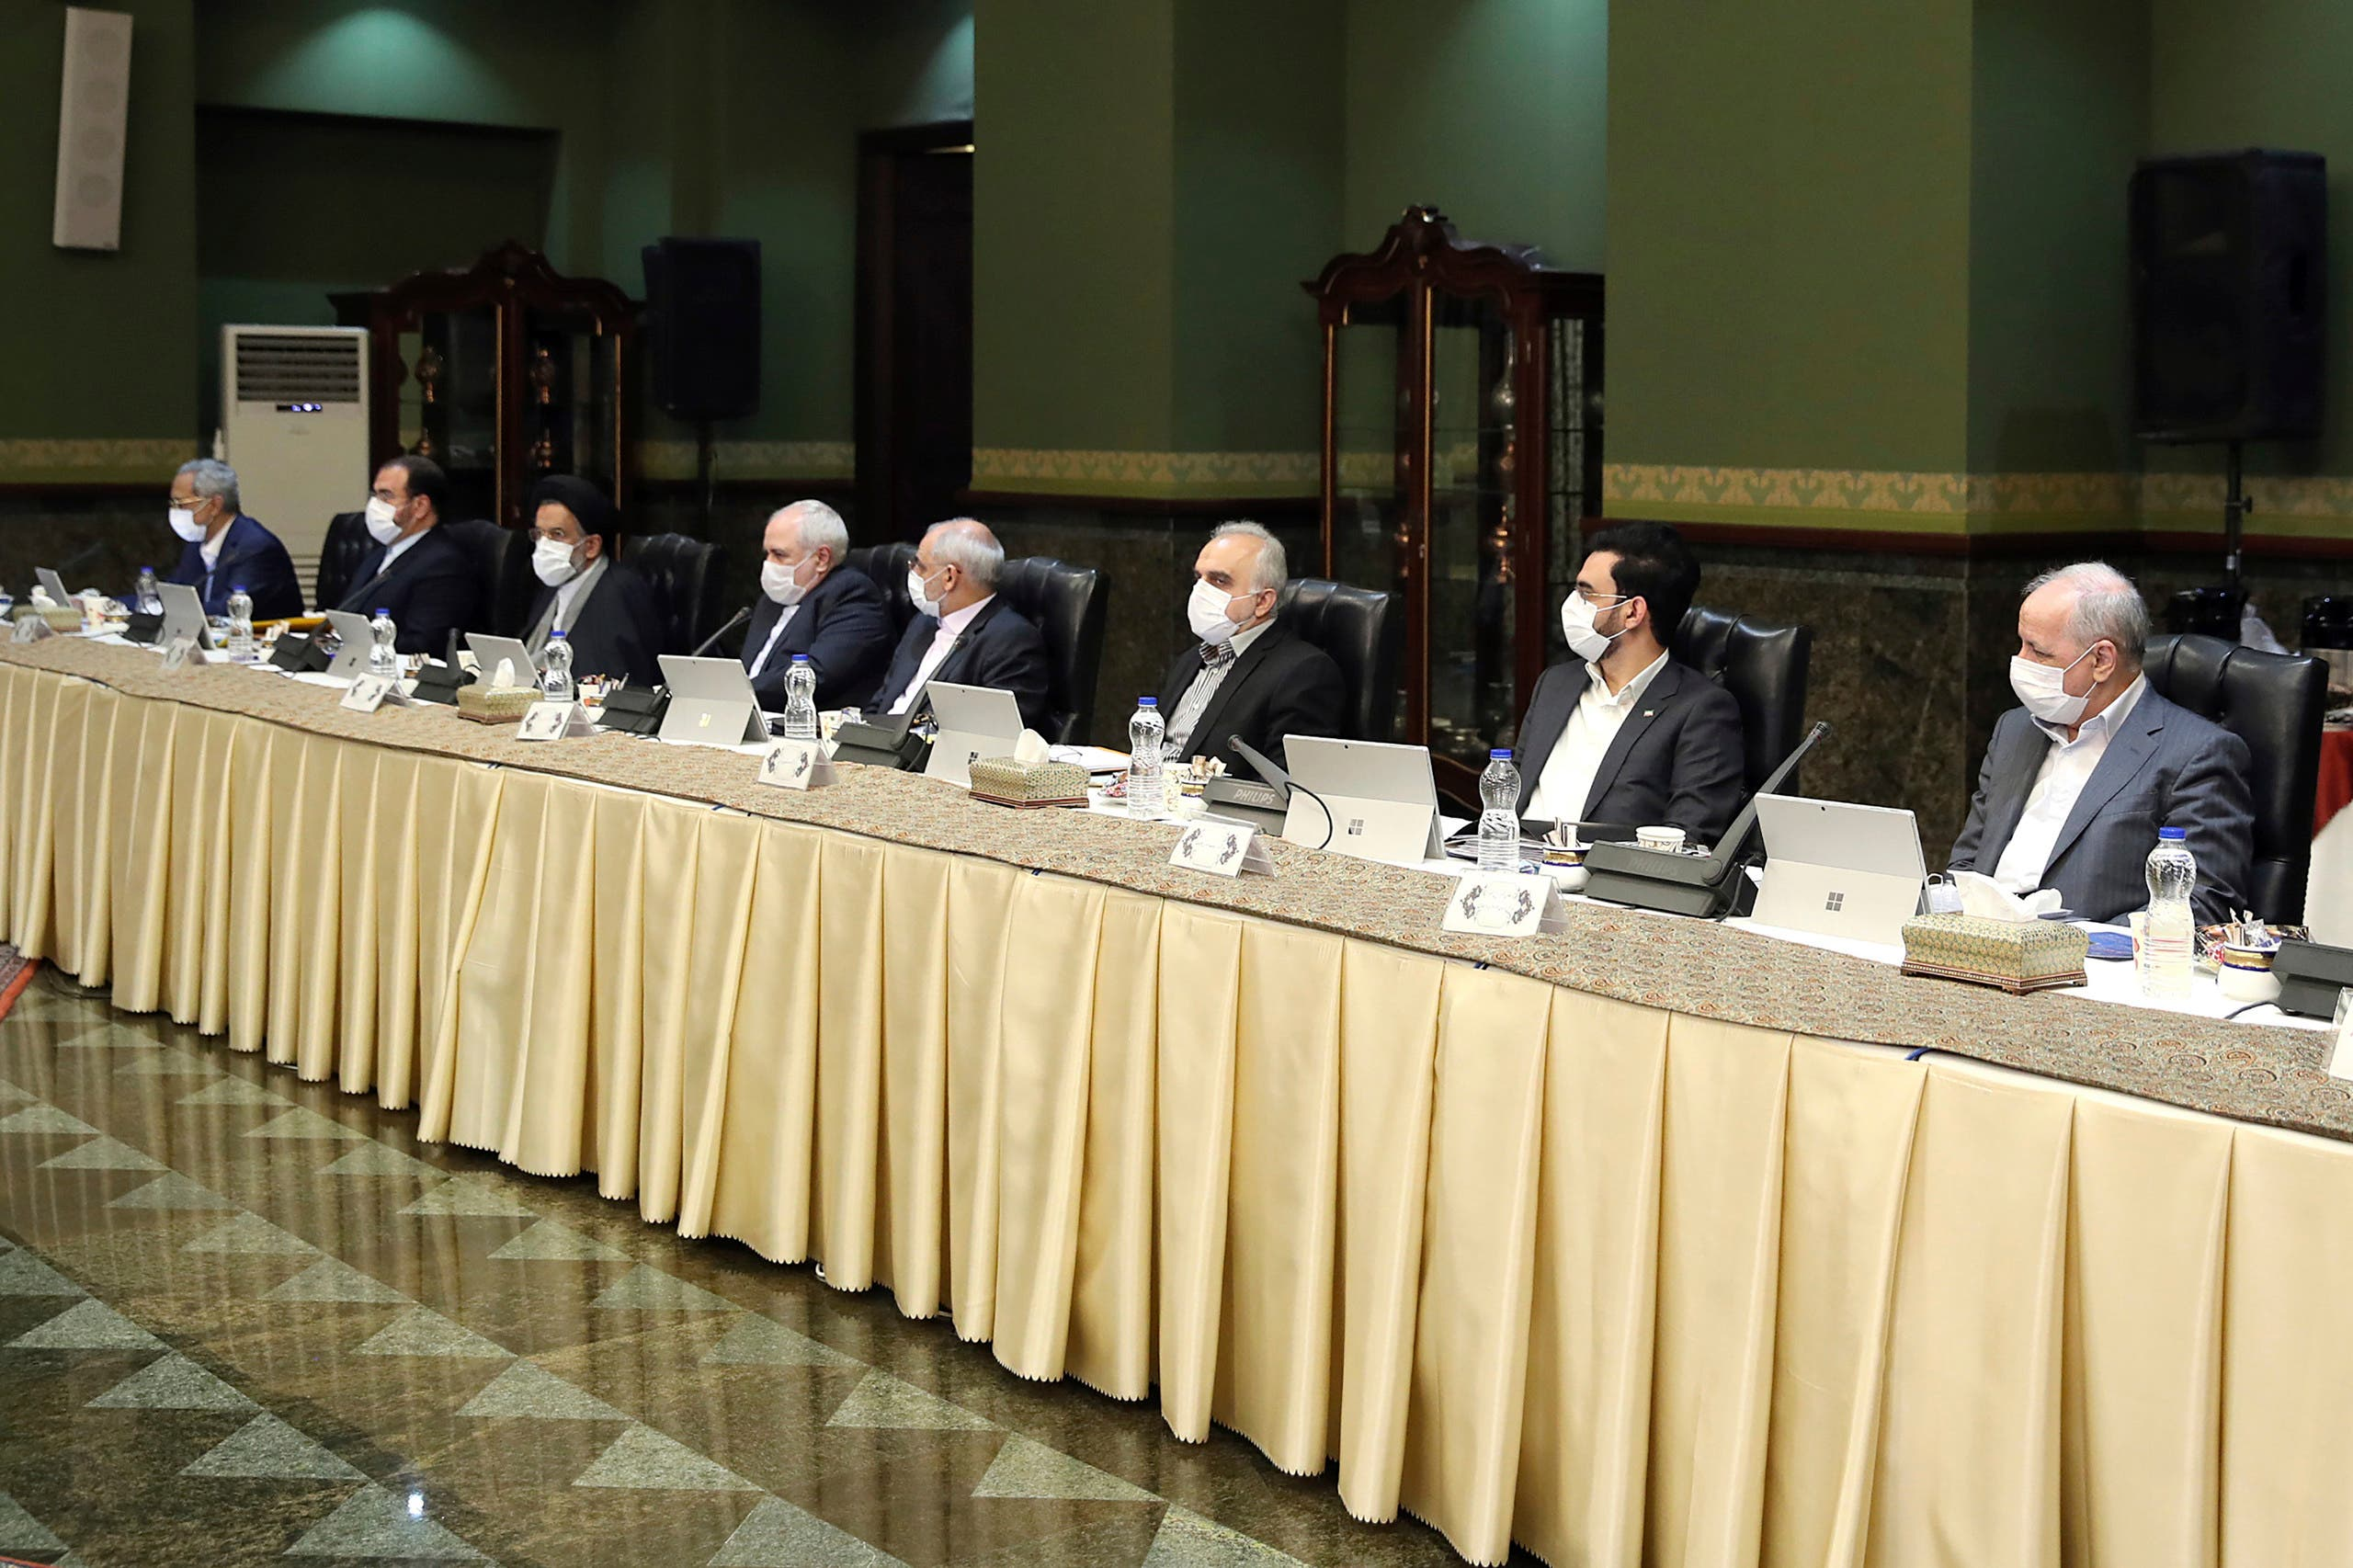 In this photo released by the official website of the Office of the Iranian Presidency, cabinet members wearing face masks attend their meeting in Tehran, Iran on March 18, 2020. (AP)